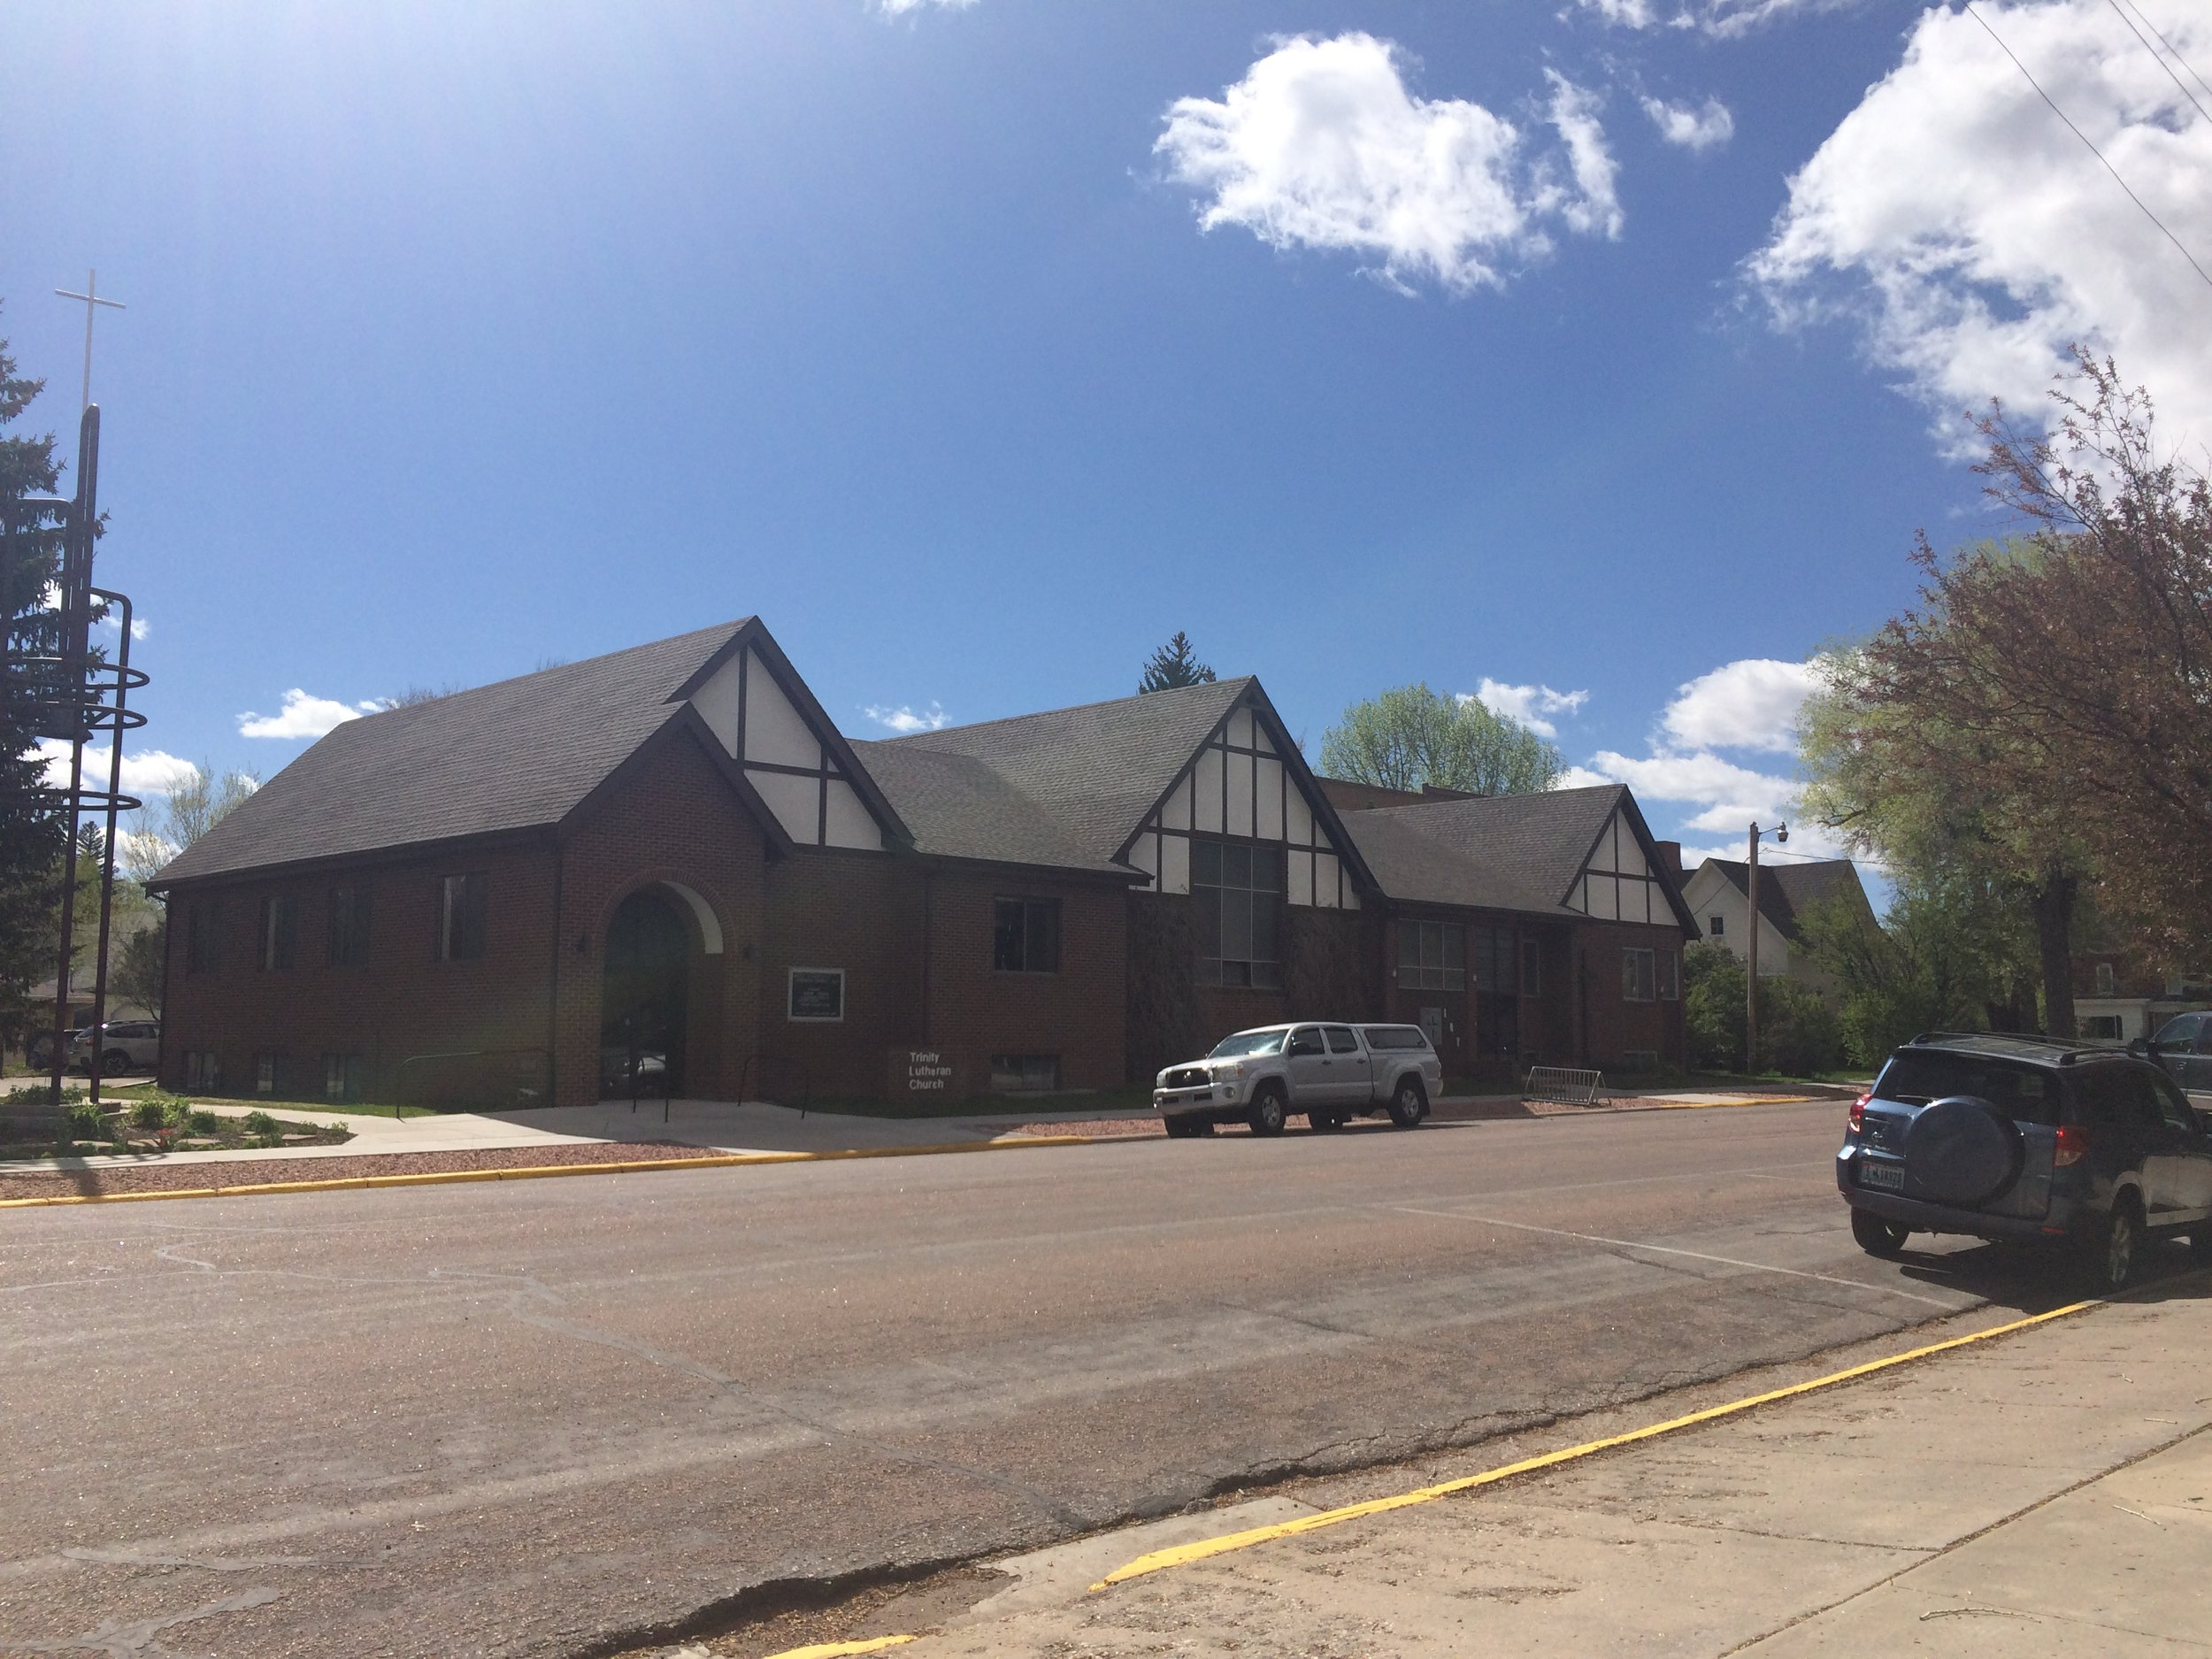 The Trinity Lutheran Church moved to their new location on 7th Street in 1925